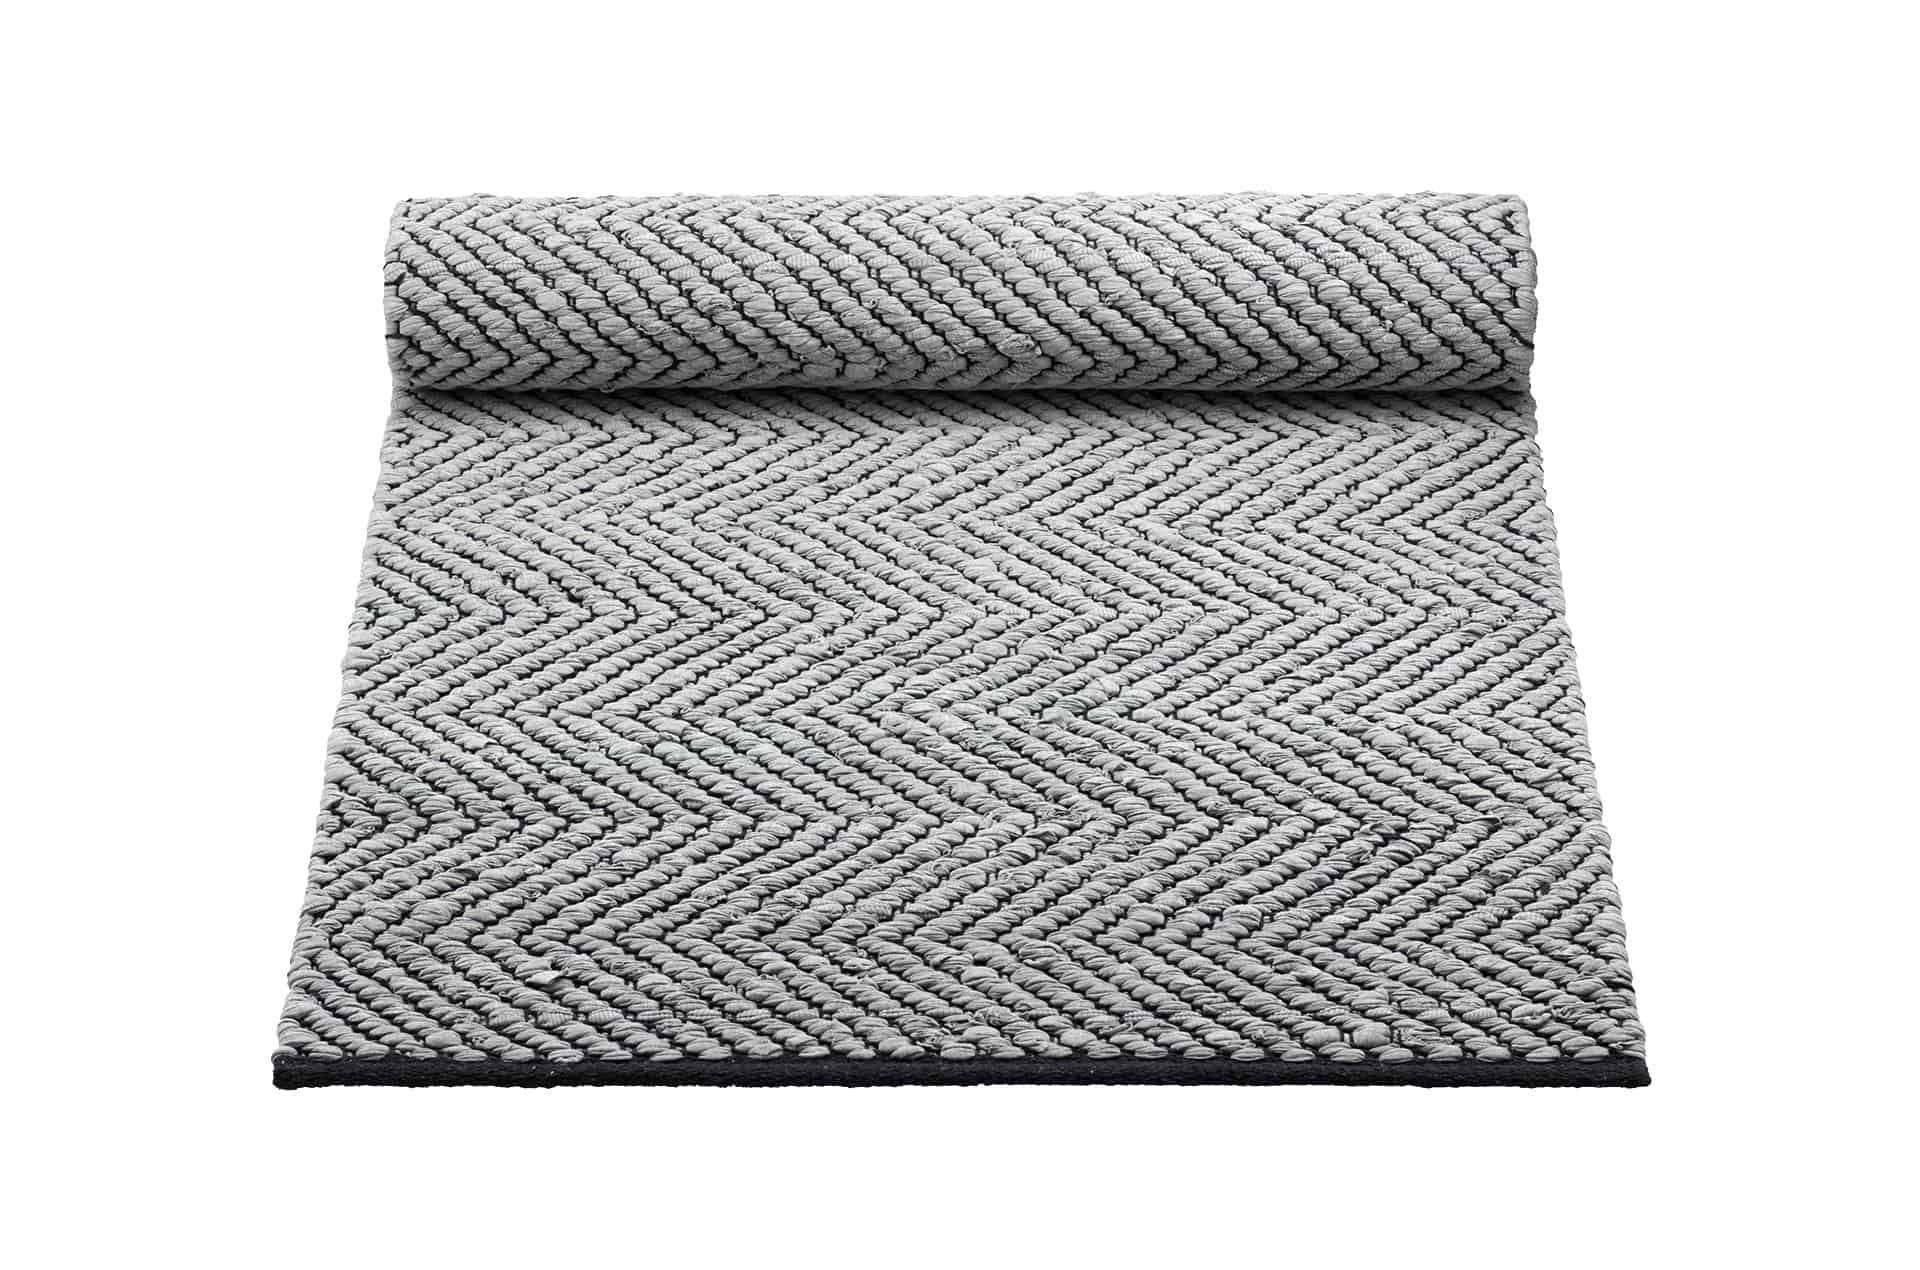 Tapis gris-noir 100% coton rain recyclé by Rugsolid-PARIDEO design contemporain durable